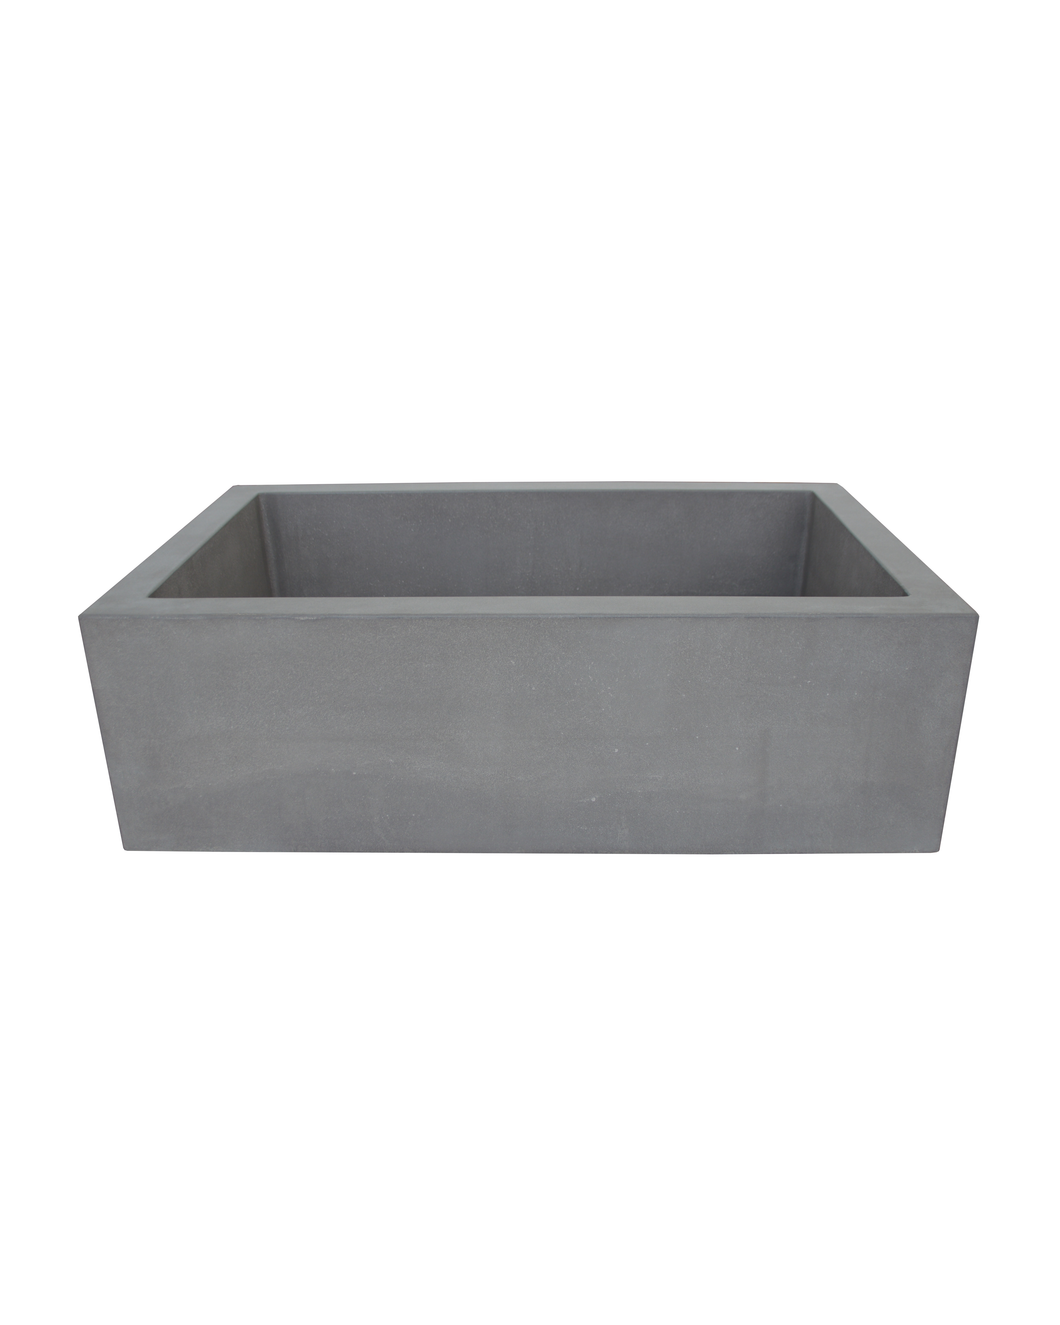 Front view of Hyde Concrete's Farmhouse 1 style bathroom trough sink. Pictured in OPC Portland Cement color.